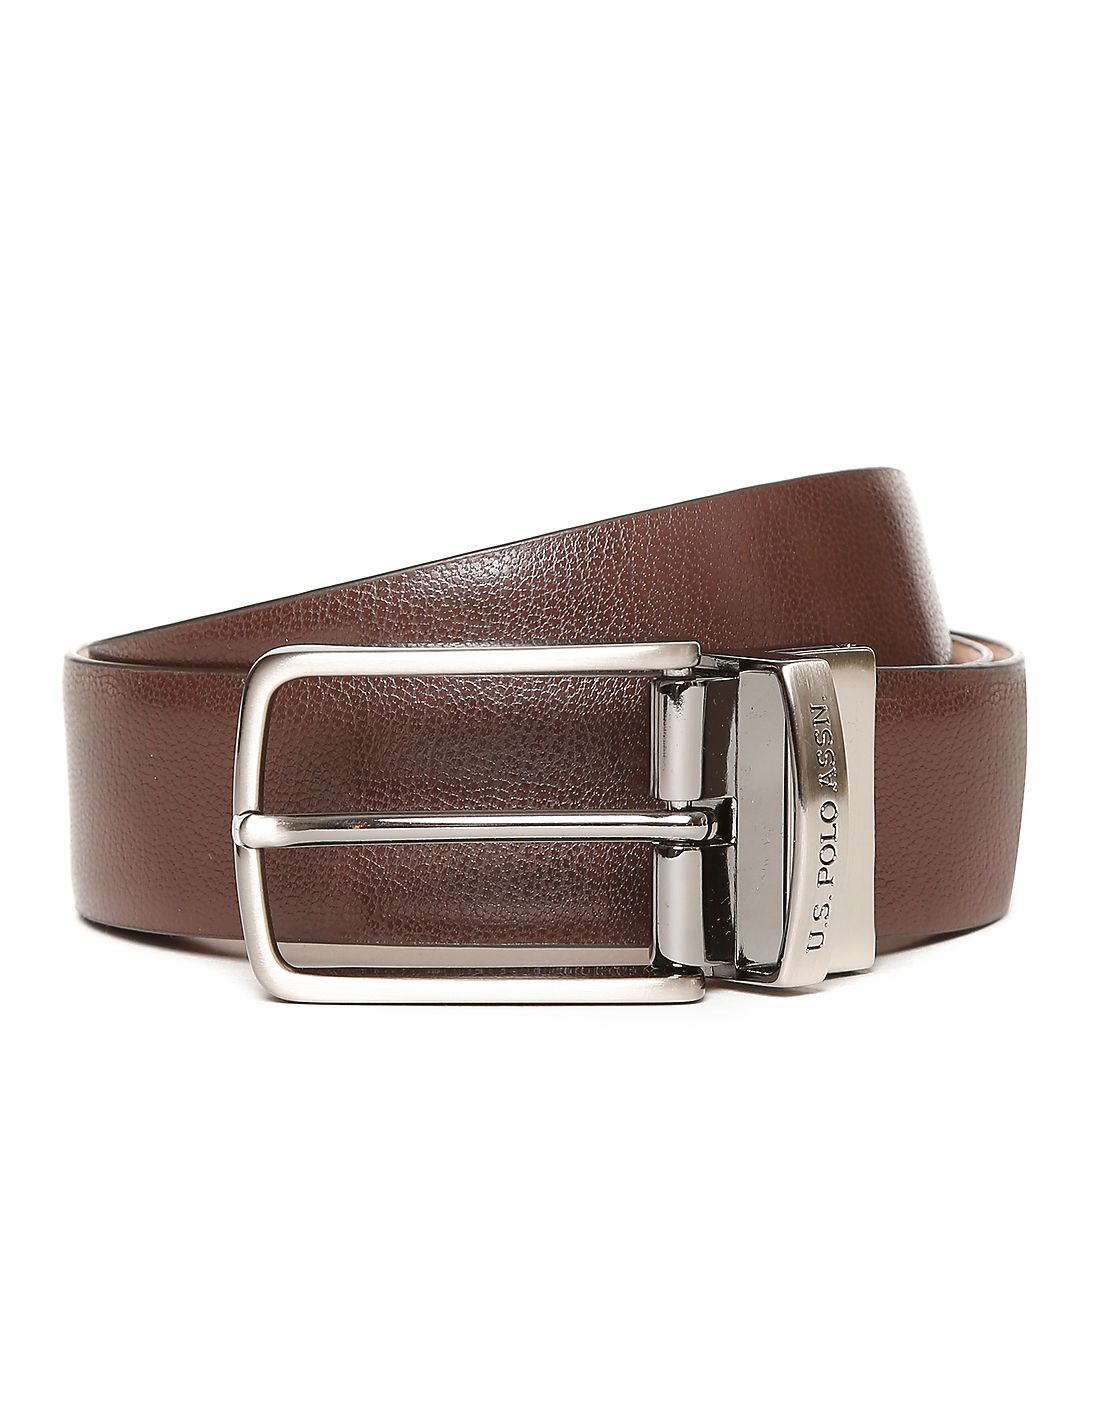 U.S.Polo Assn - Reversible Leather Belt